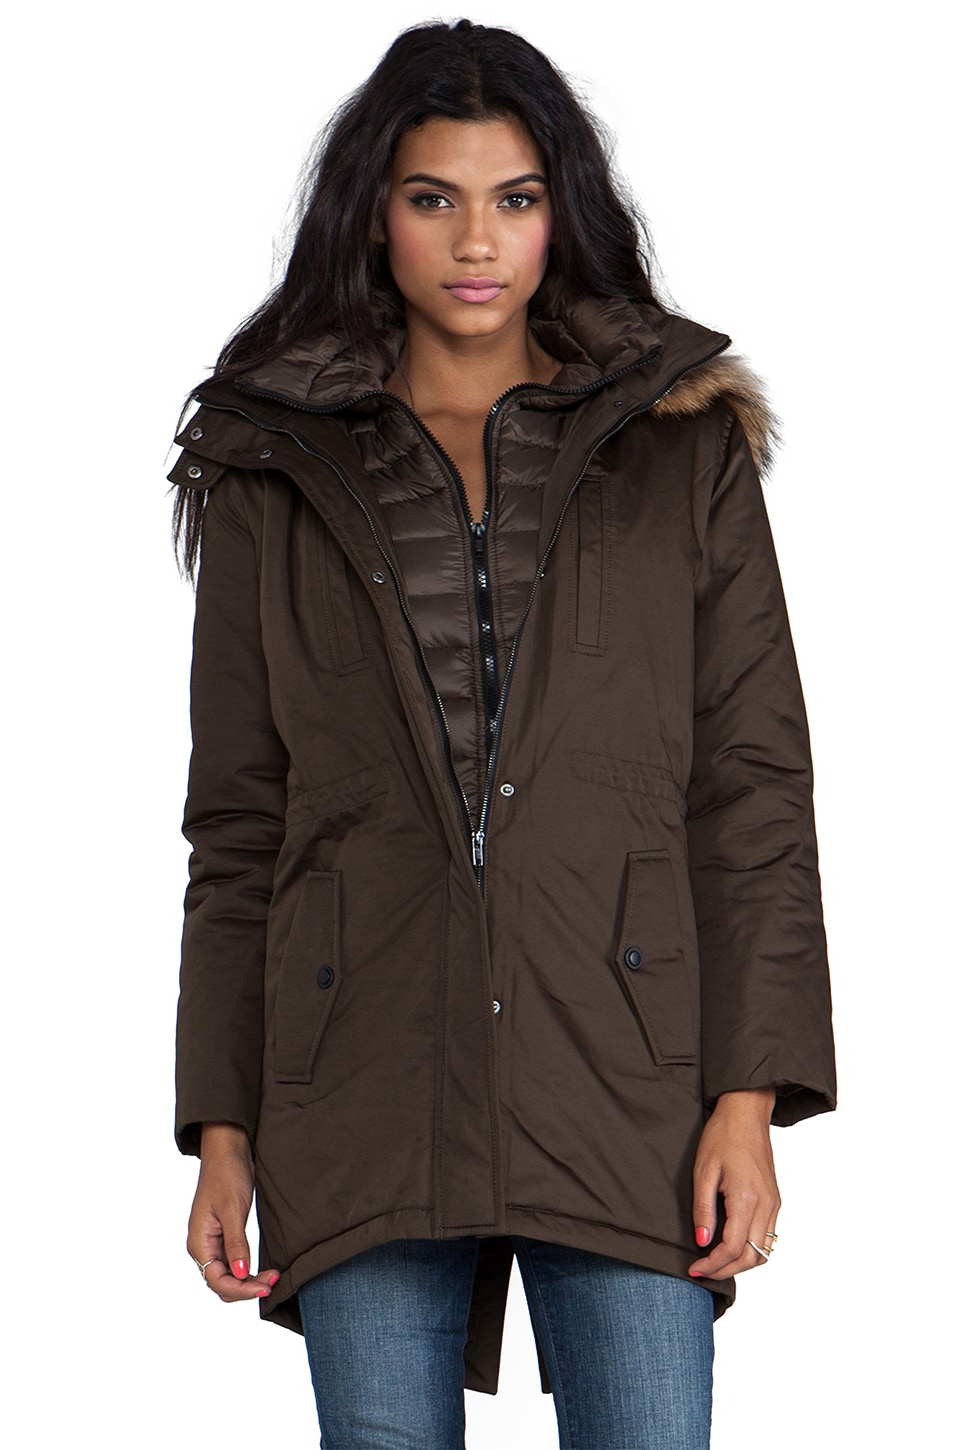 Soia & Kyo Elora Down Coat with Removable Fur Hood in Military